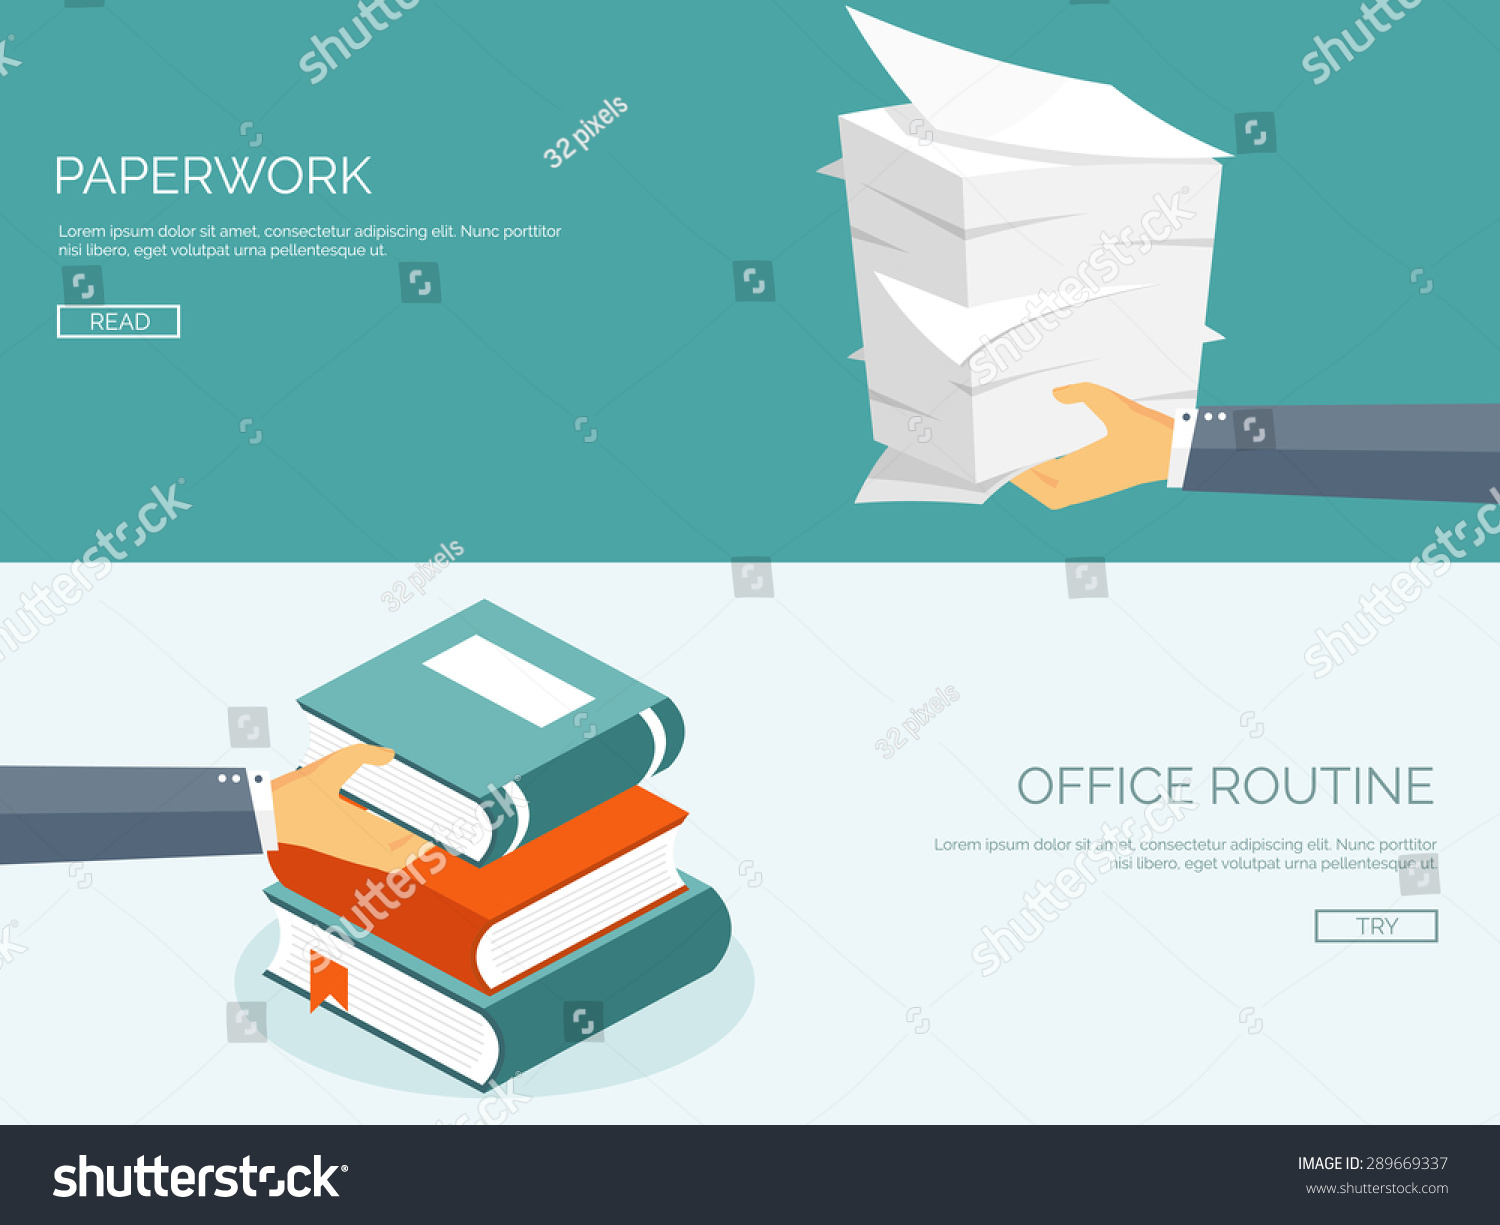 Paperwork Flat Background Paper Office Emailing Stock Vector ...